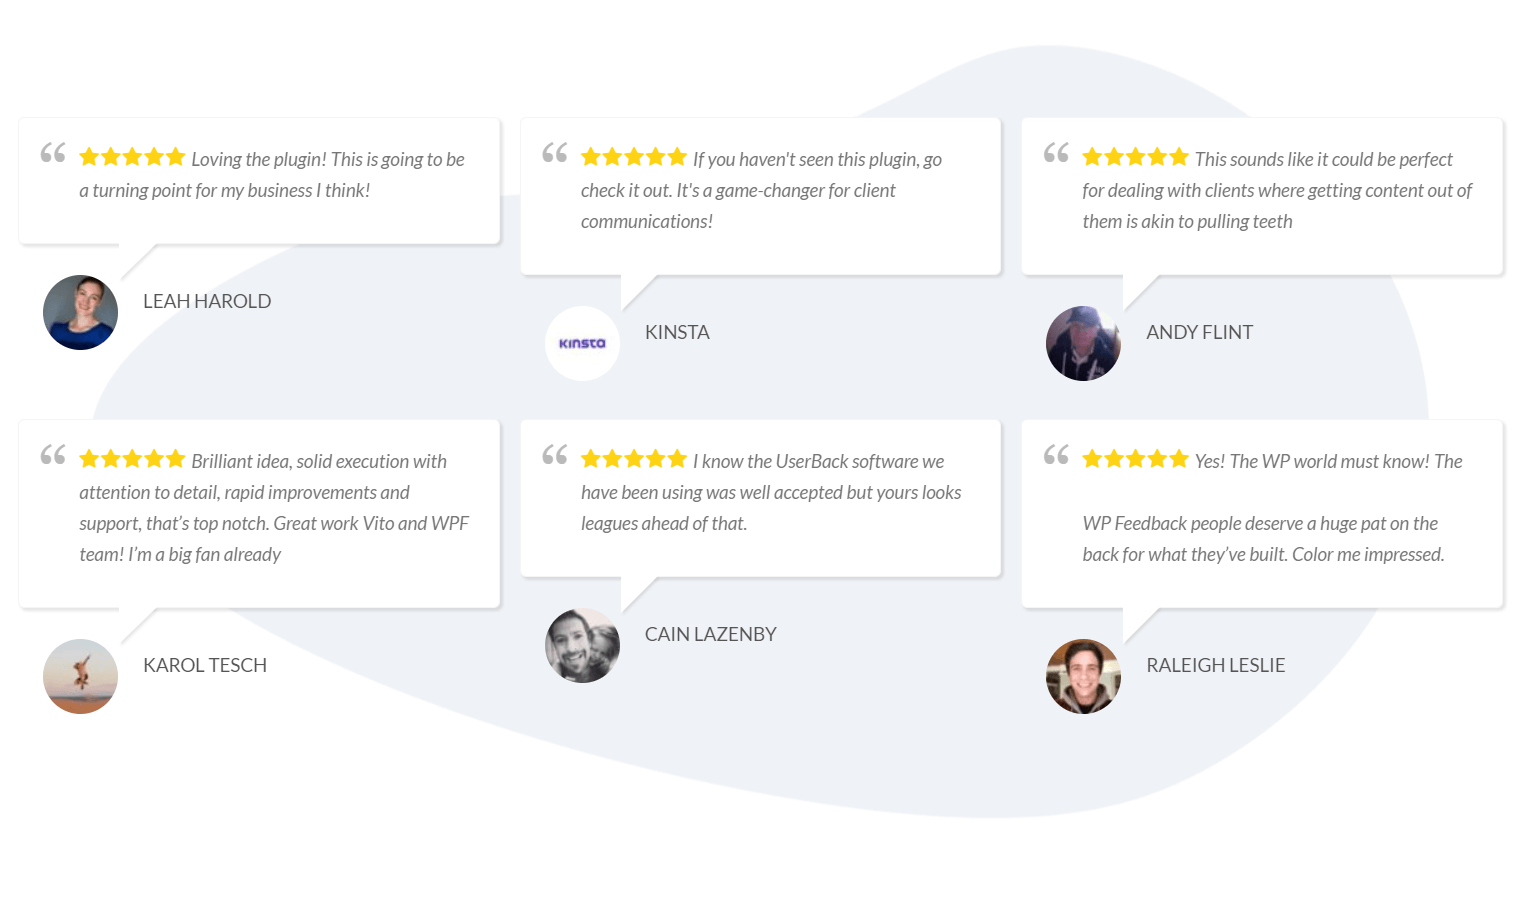 reviews-wpfeedback_0004_screenshot-wpfeedback.co-2019.07.14-16_22_41